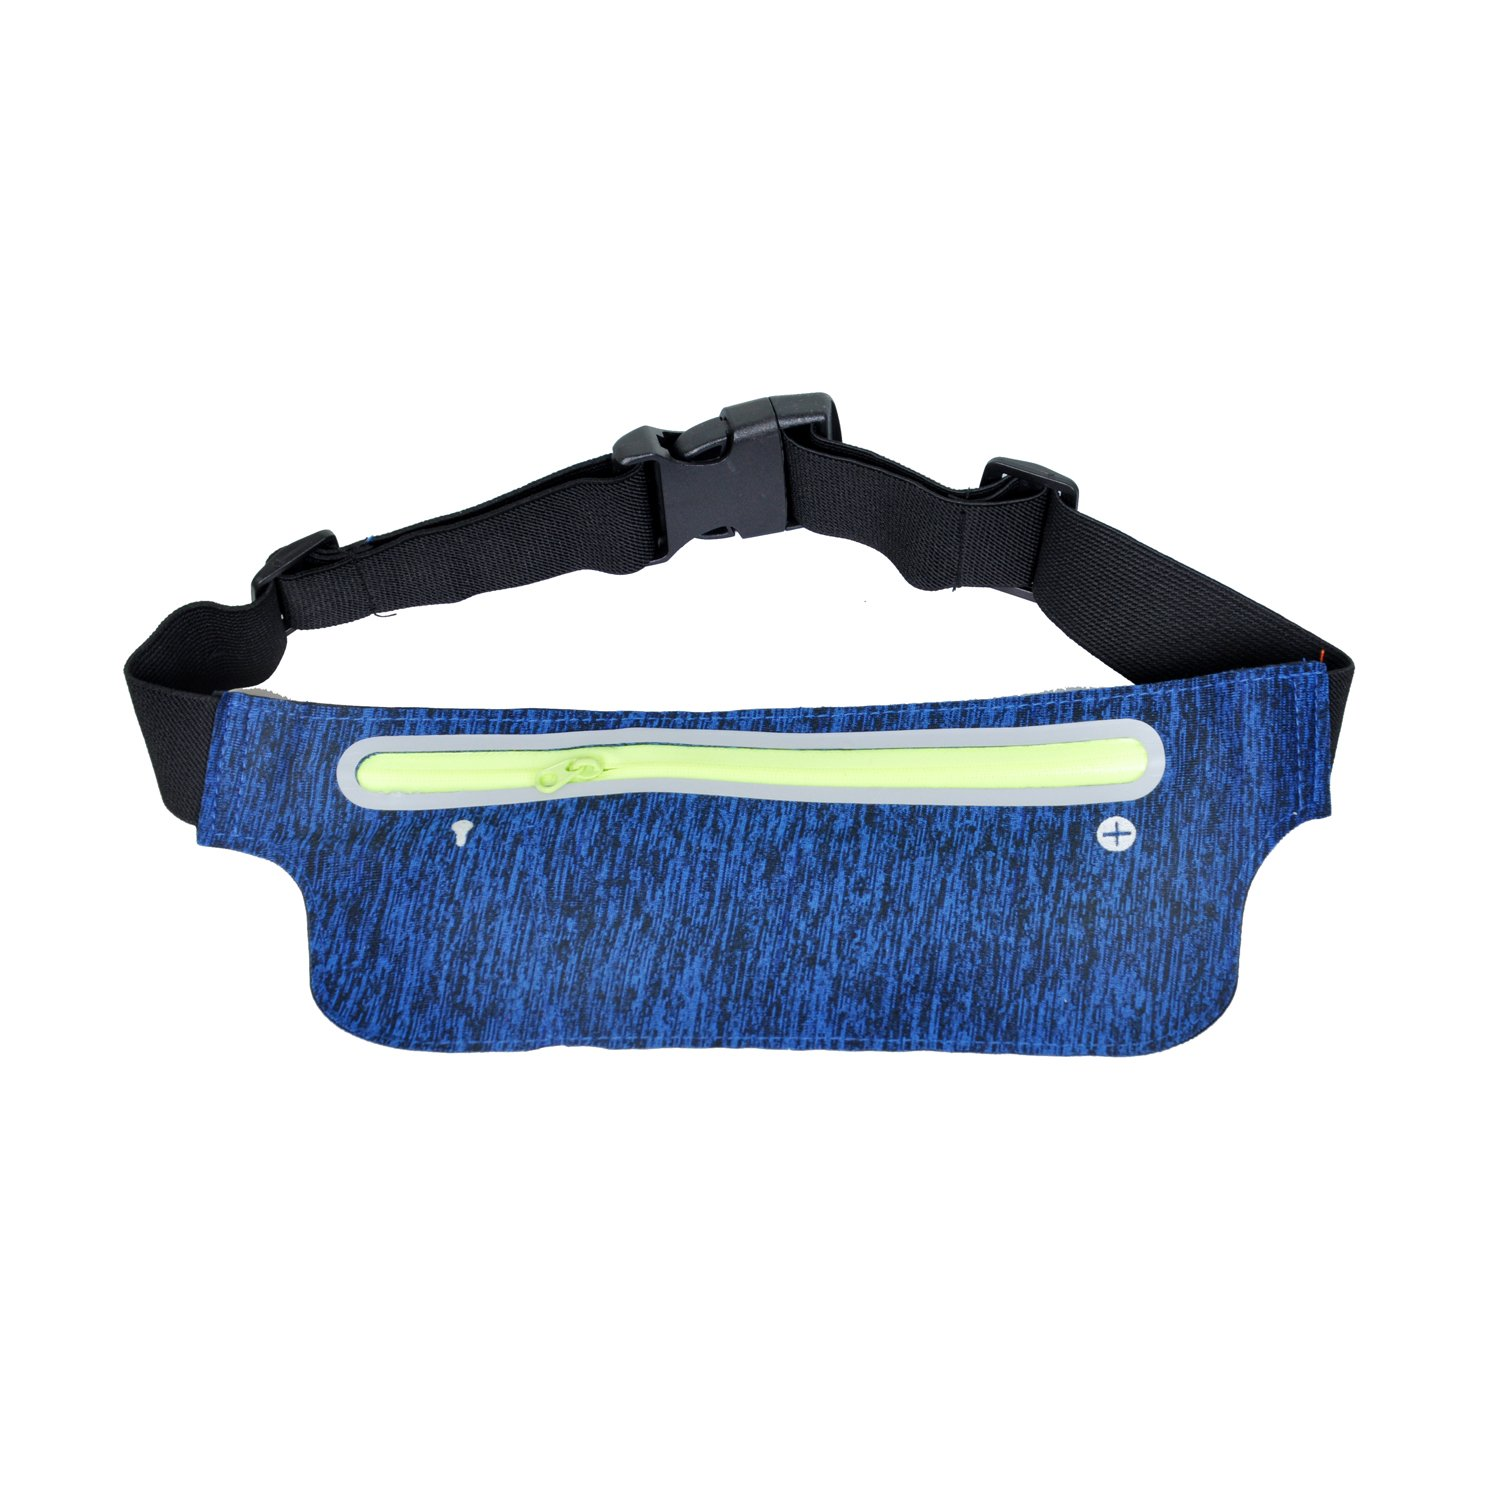 Galaxy Eagle Sport Waist Pack Fanny Pack Adjustable For Travel